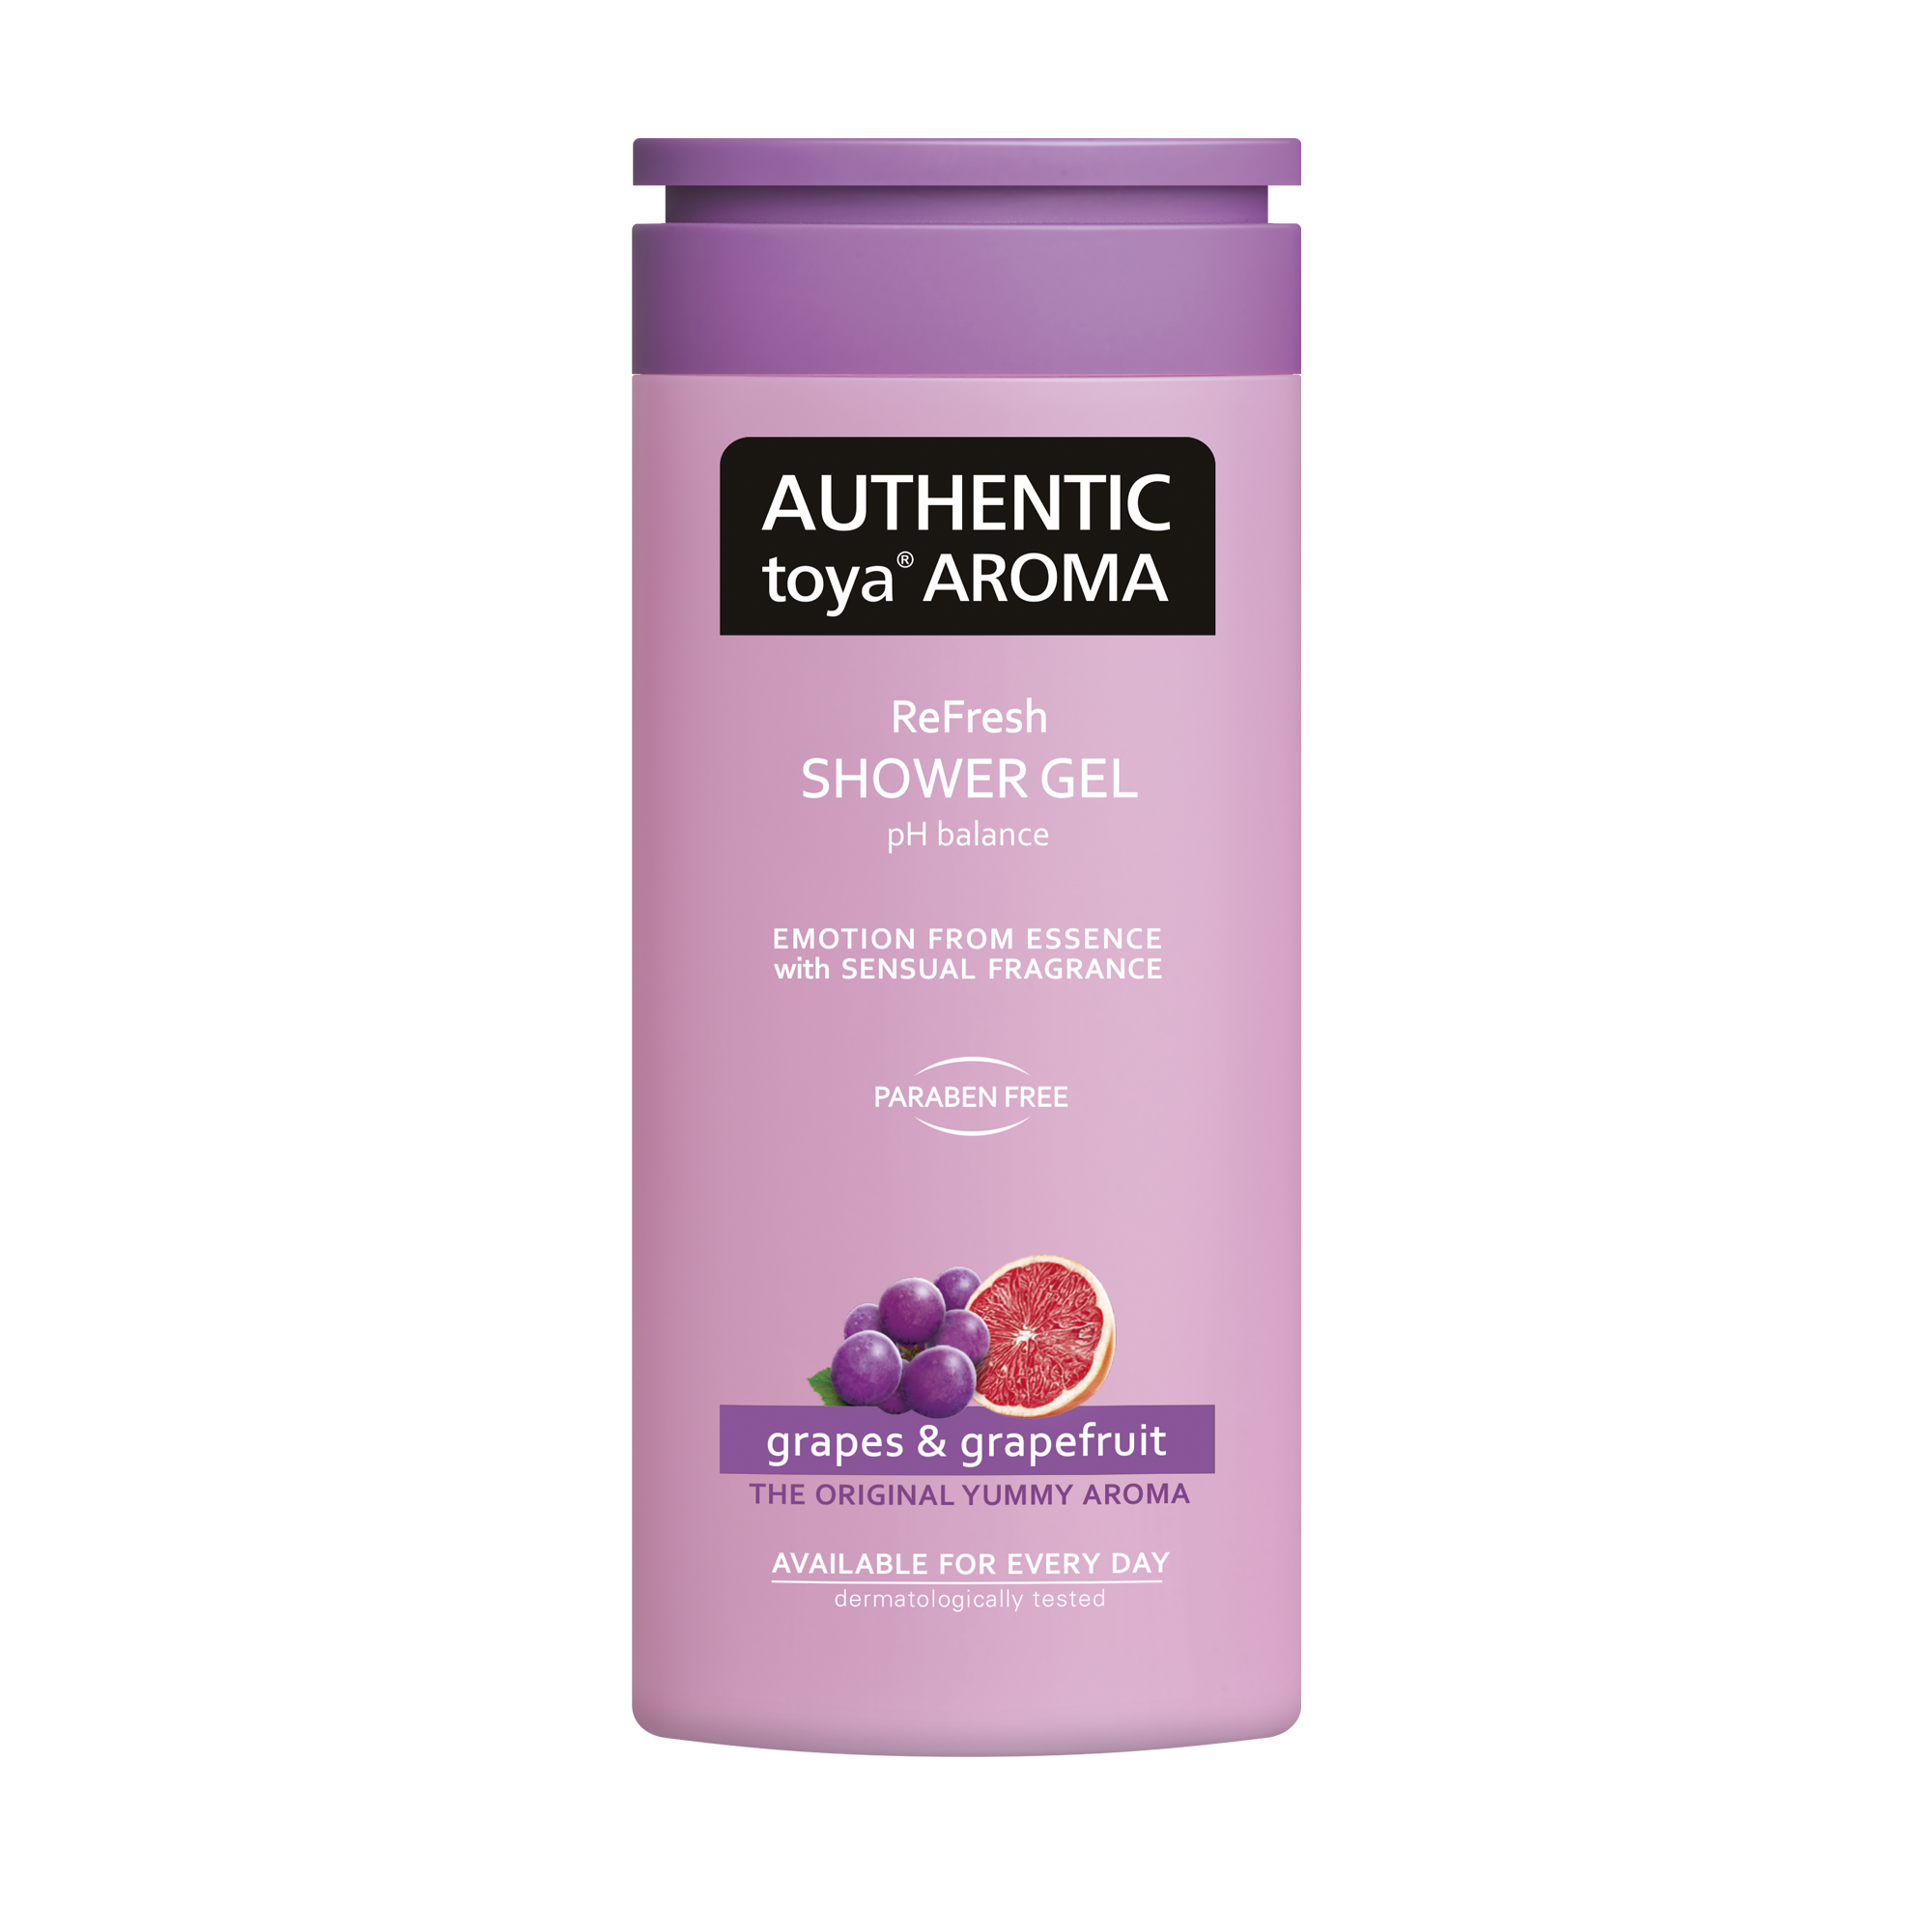 AUTHENTIC toya AROMA grapes & grapefruit shower gel